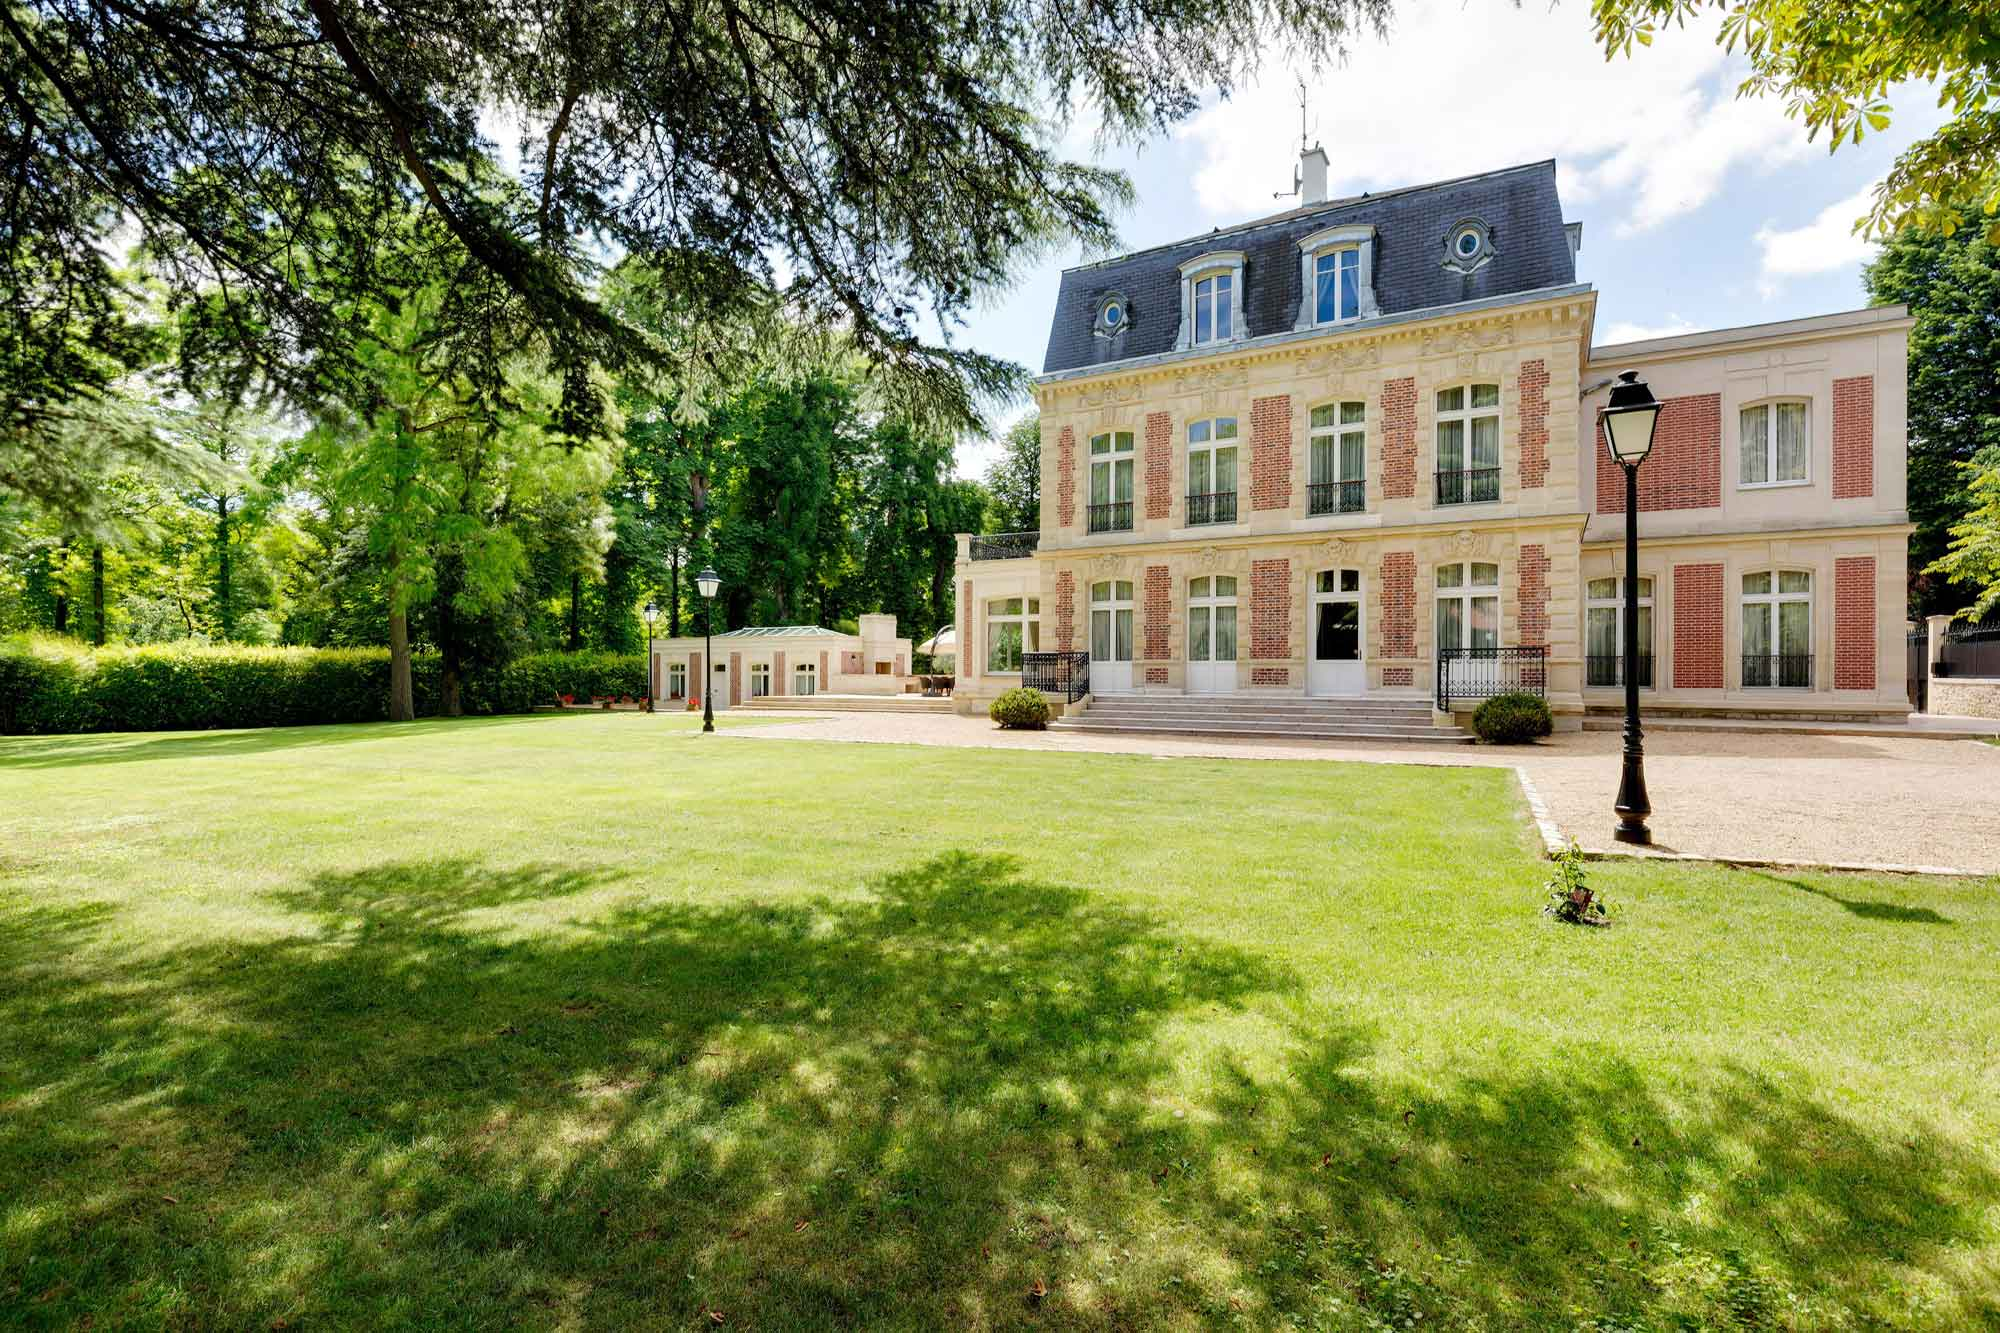 This Second Empire mansion in the exclusive Parisian suburb of Saint-Cloud was constructed in 1890 and luxuriously upgraded for the 21st century.